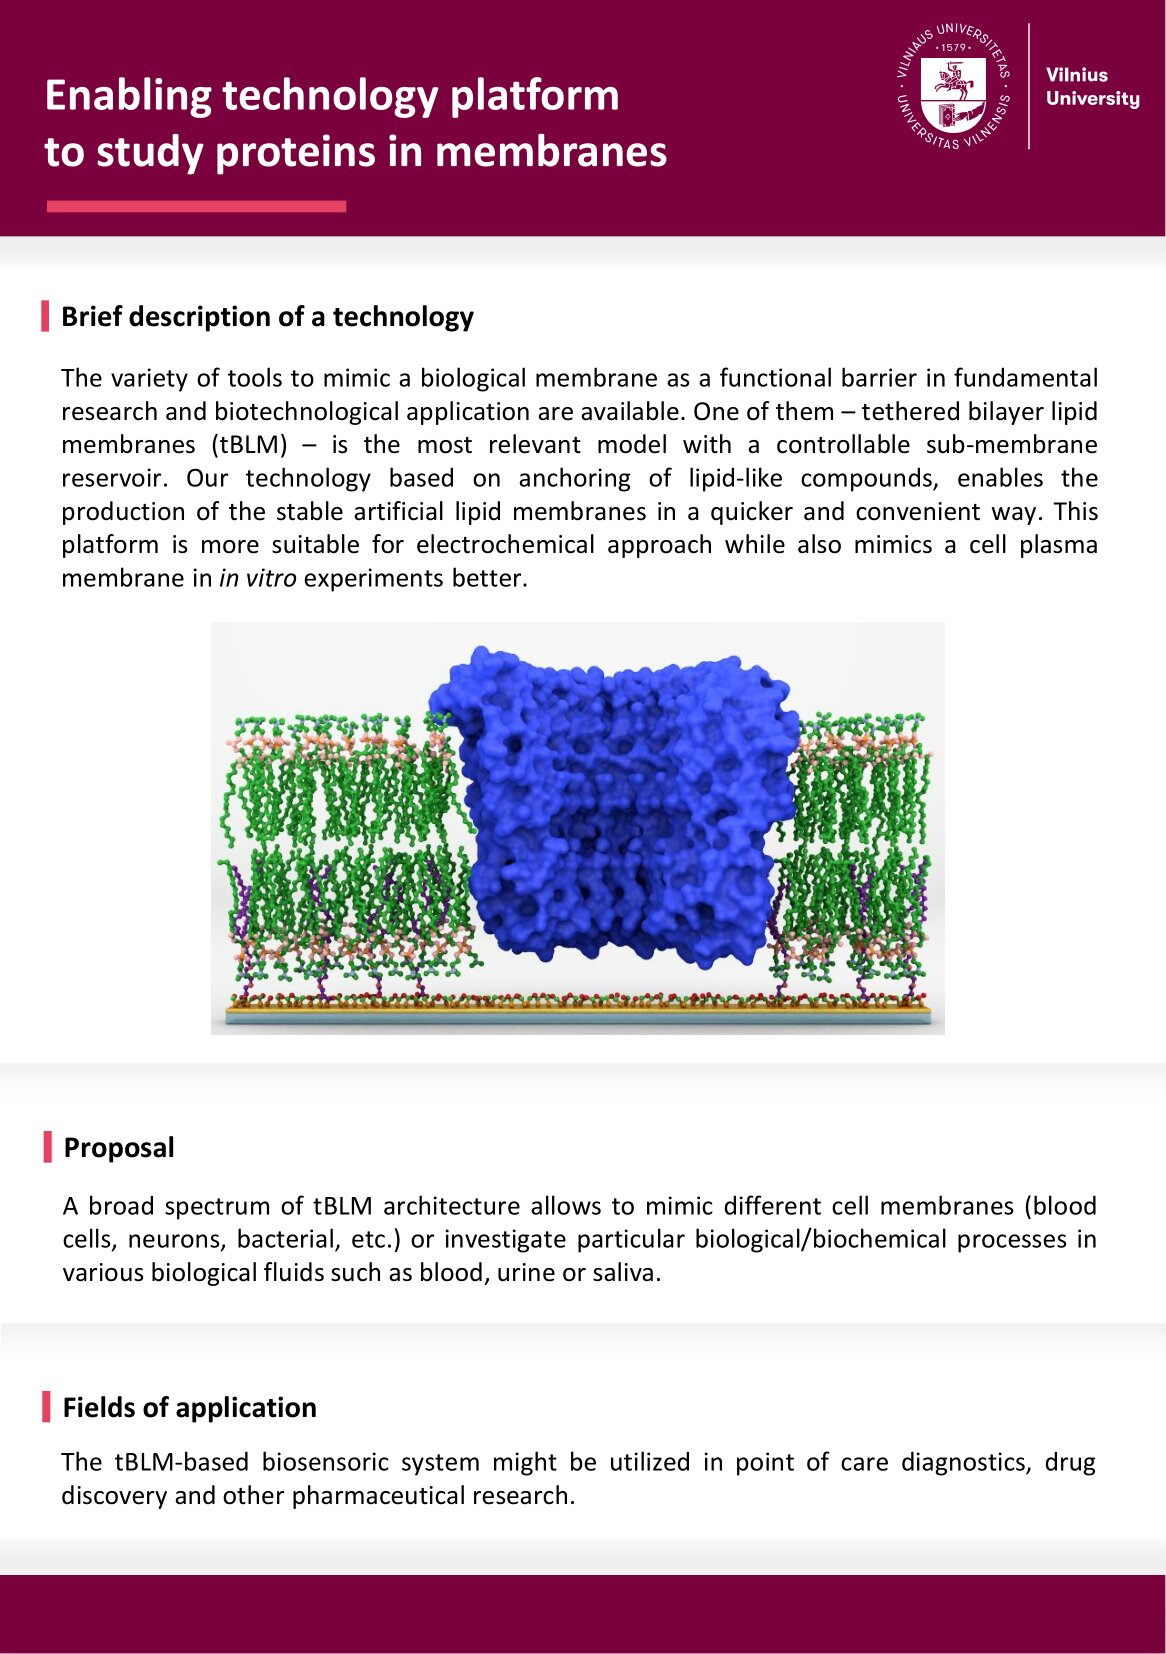 Enabling technology platform to study proteins in membranes 0002